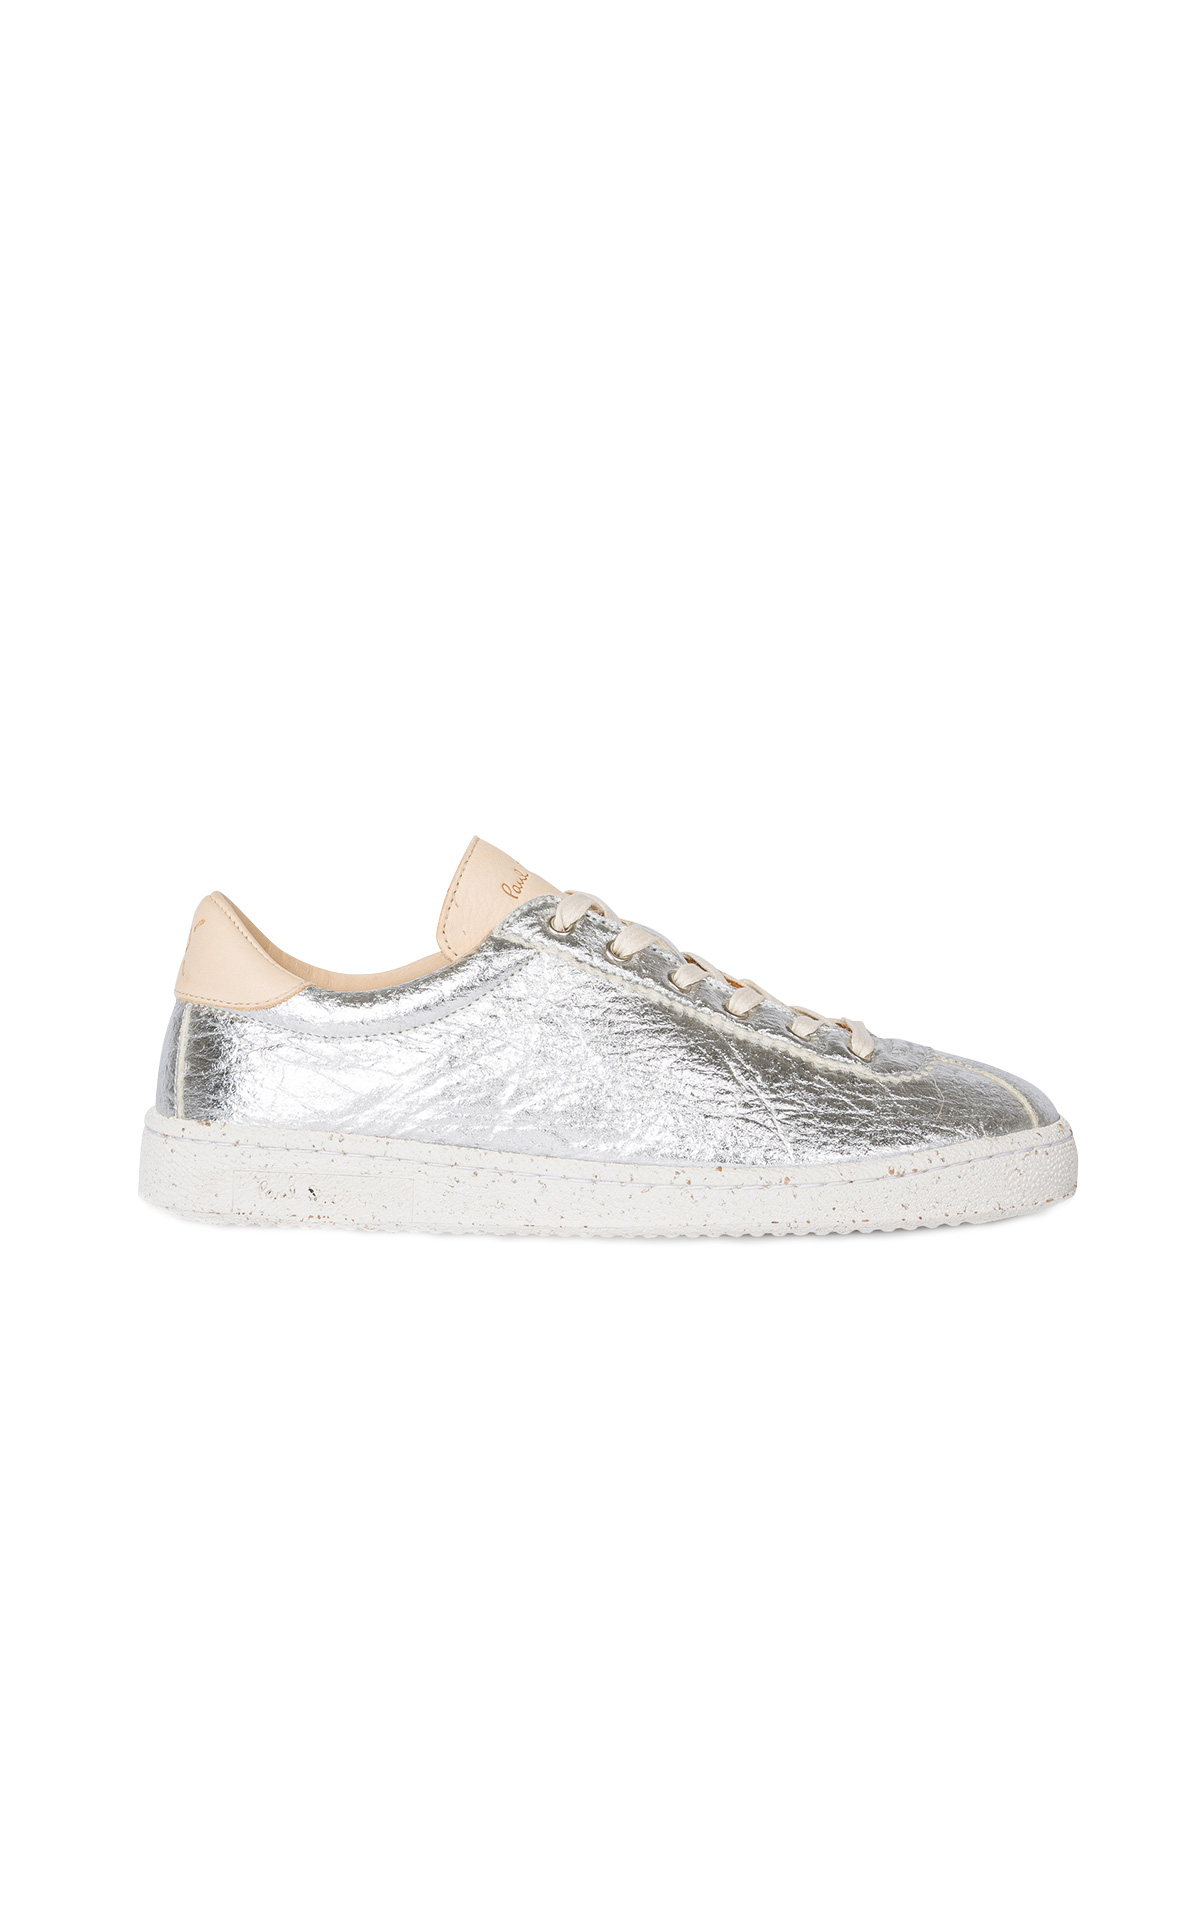 La Vallée Village Paul Smith Silver Dusty sneakers